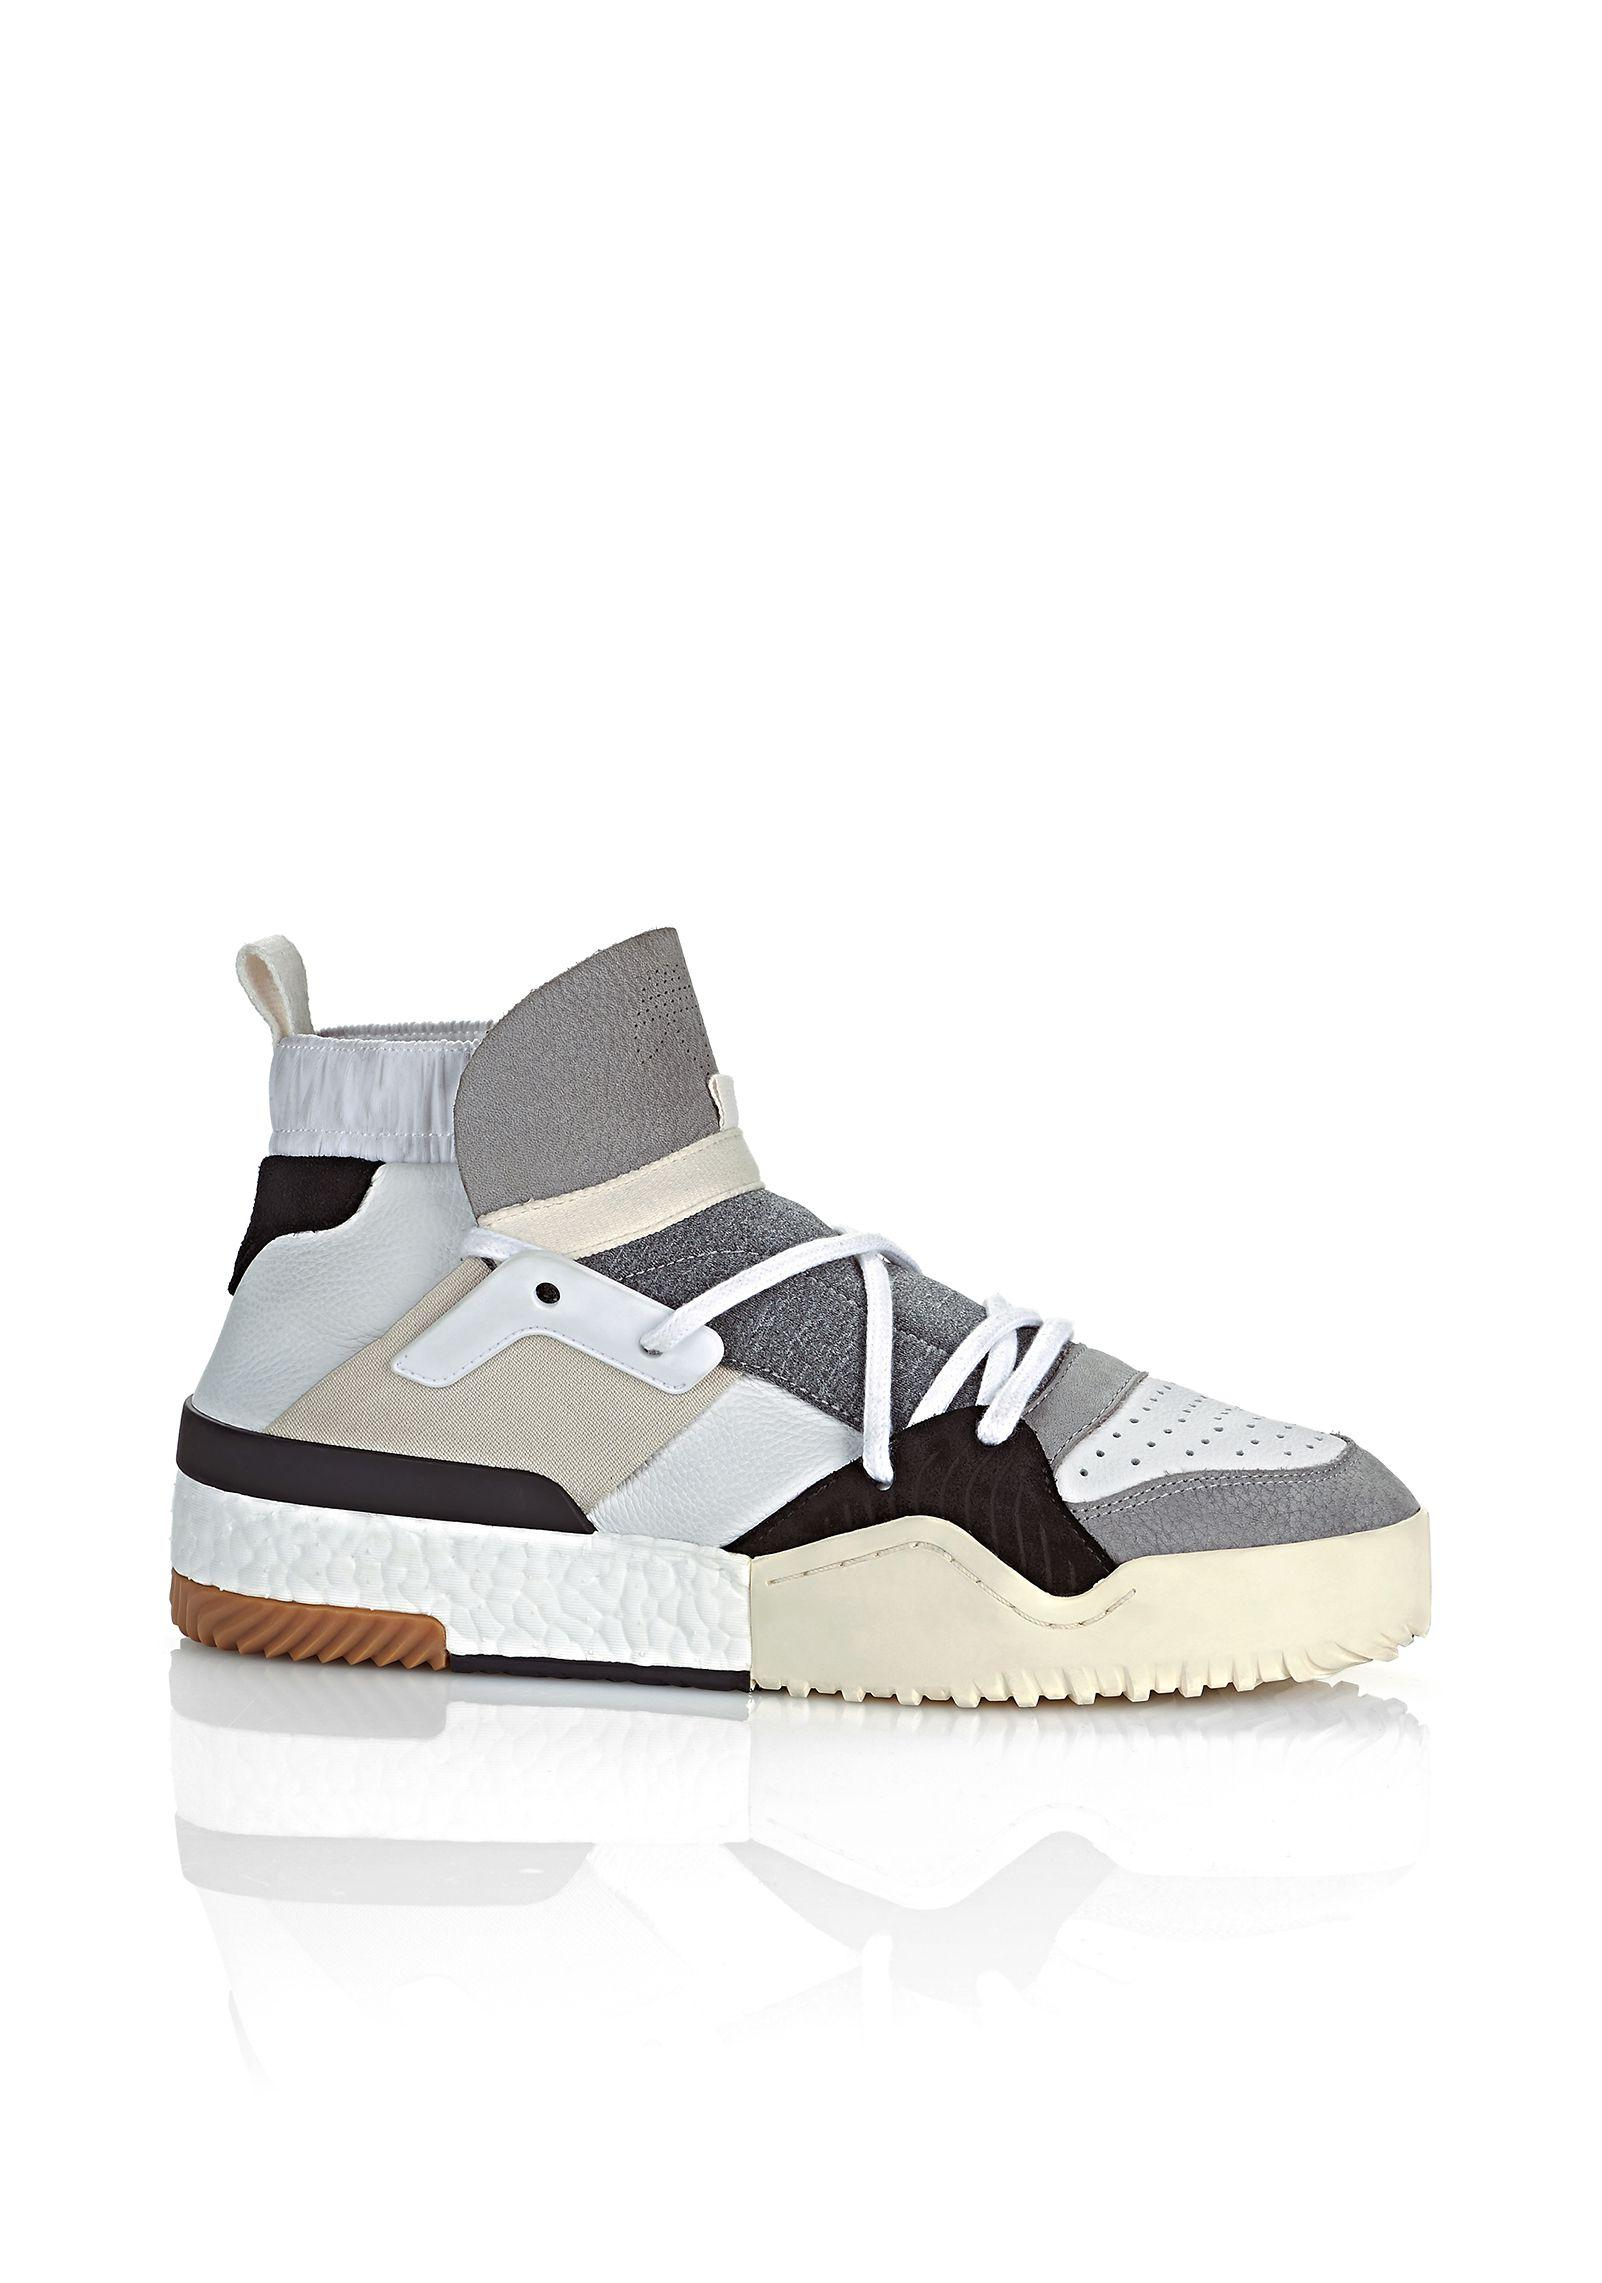 By Bball Shoes Alexander X Wang Originals White Aw Adidas sQCtrhxd